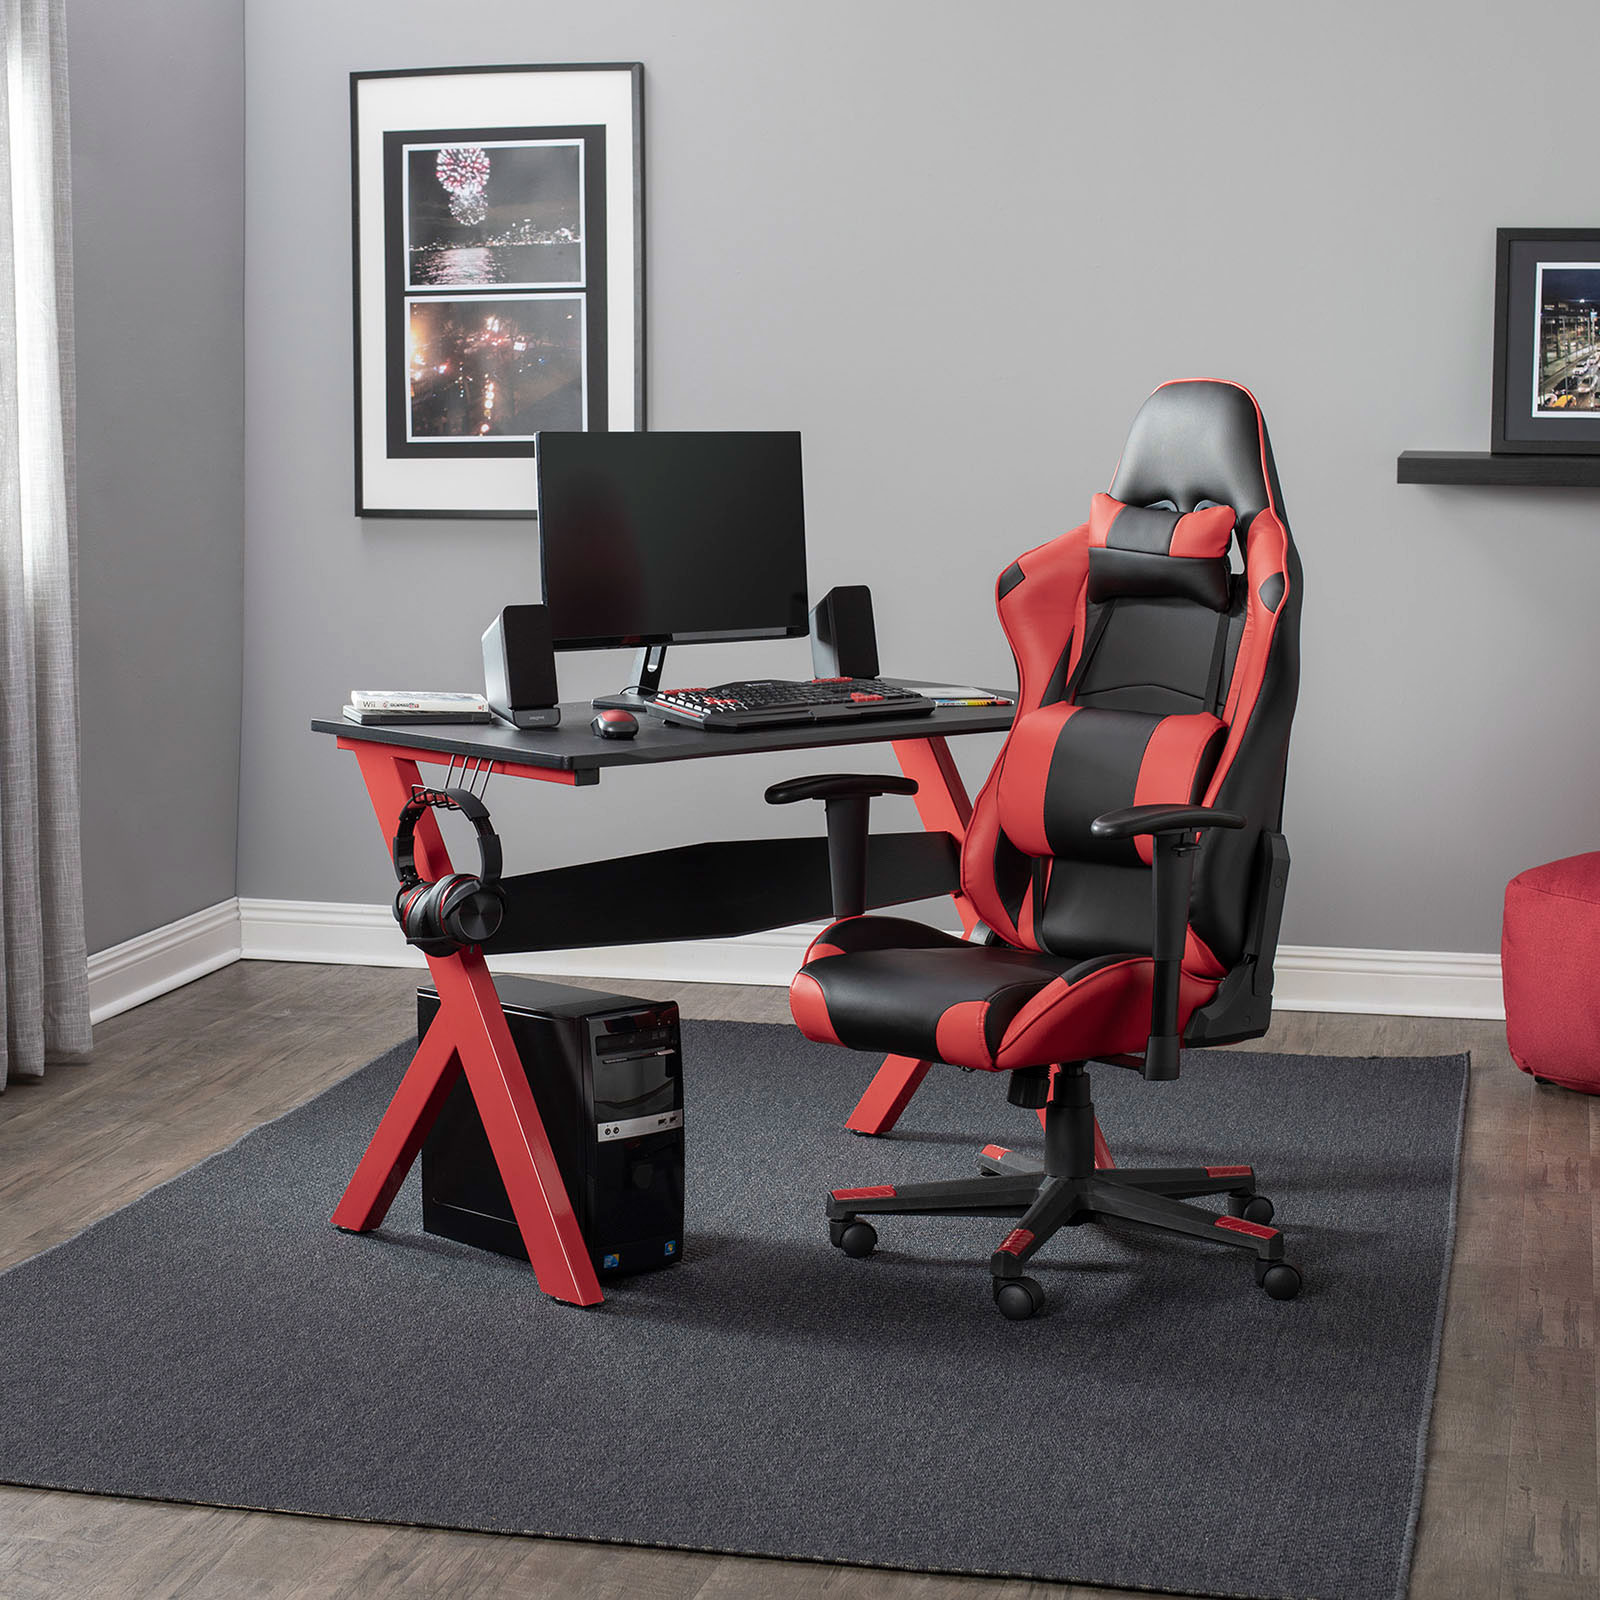 51257 Overlord Desk RS2c